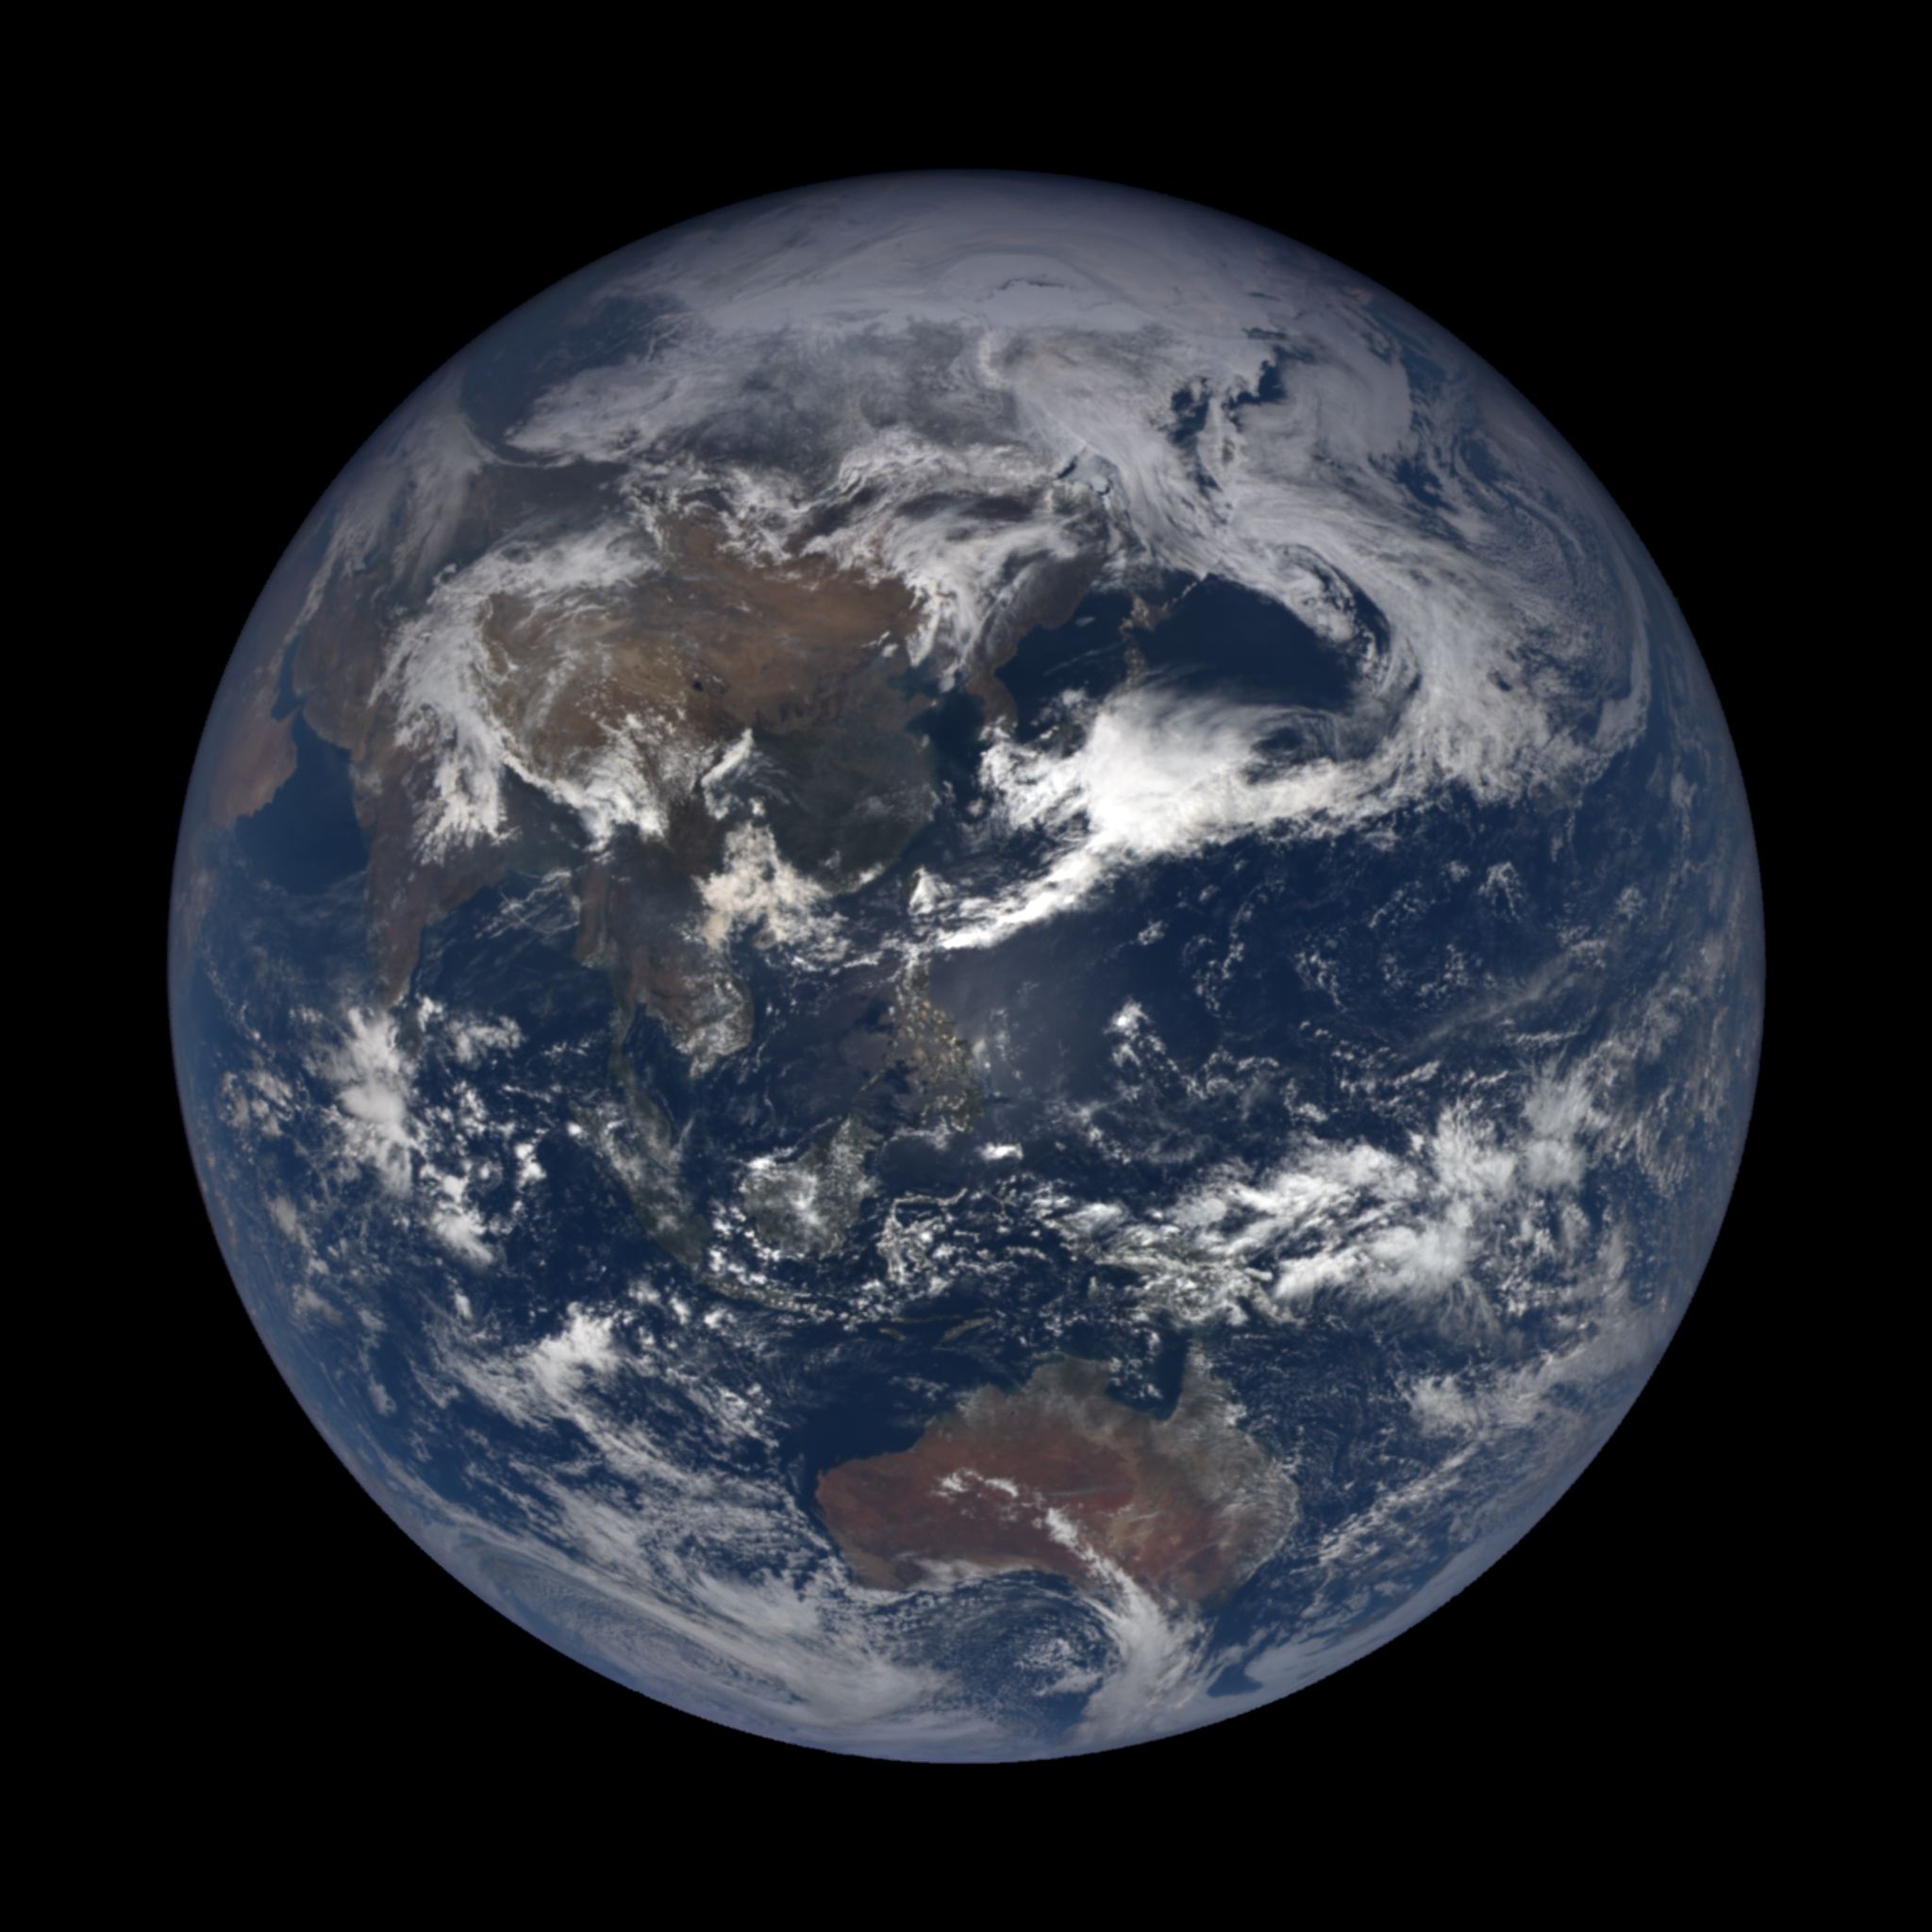 full earth with Asia visible